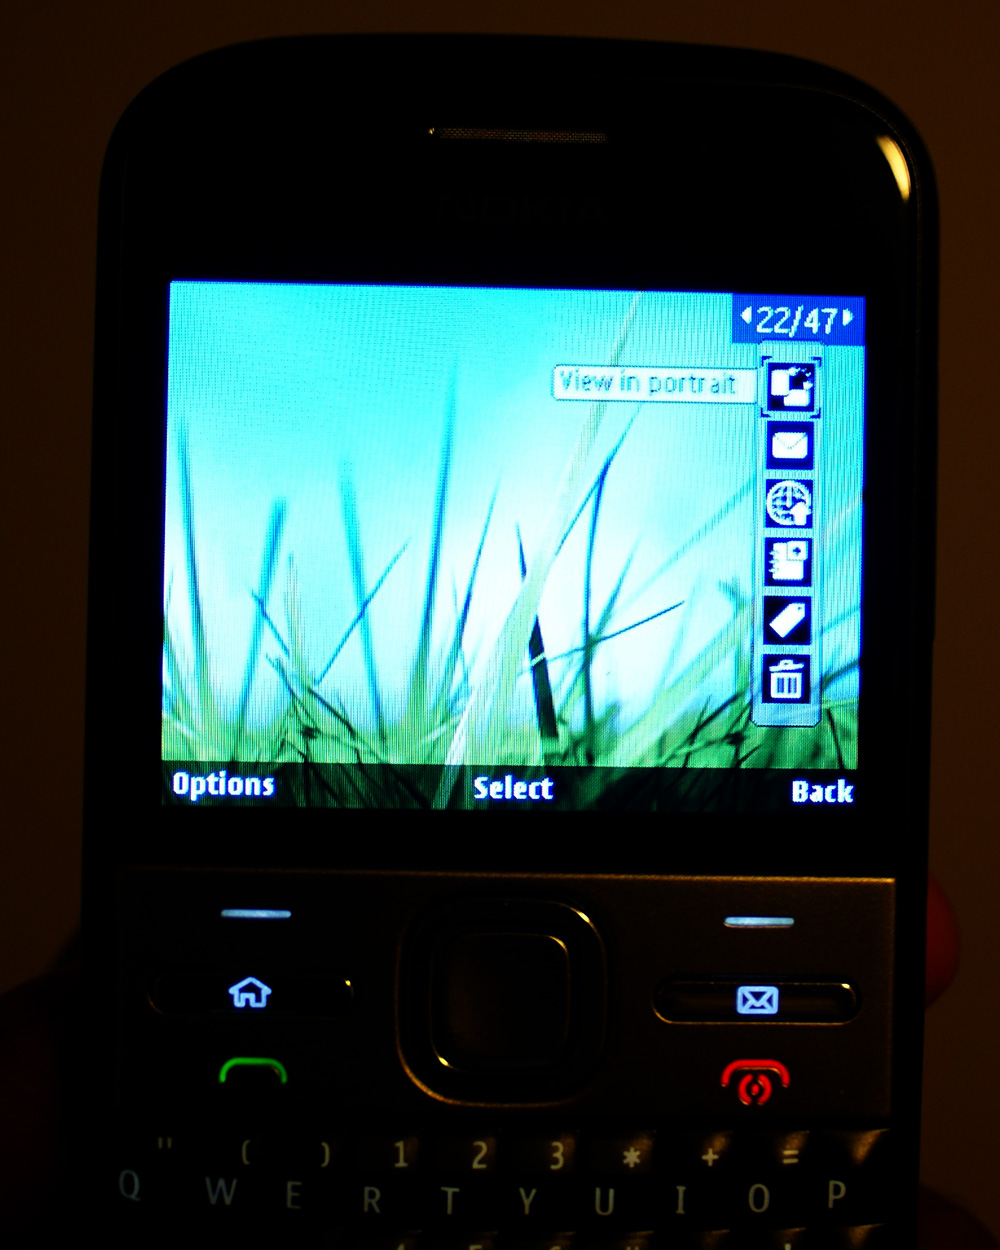 viber for nokia e5 symbian